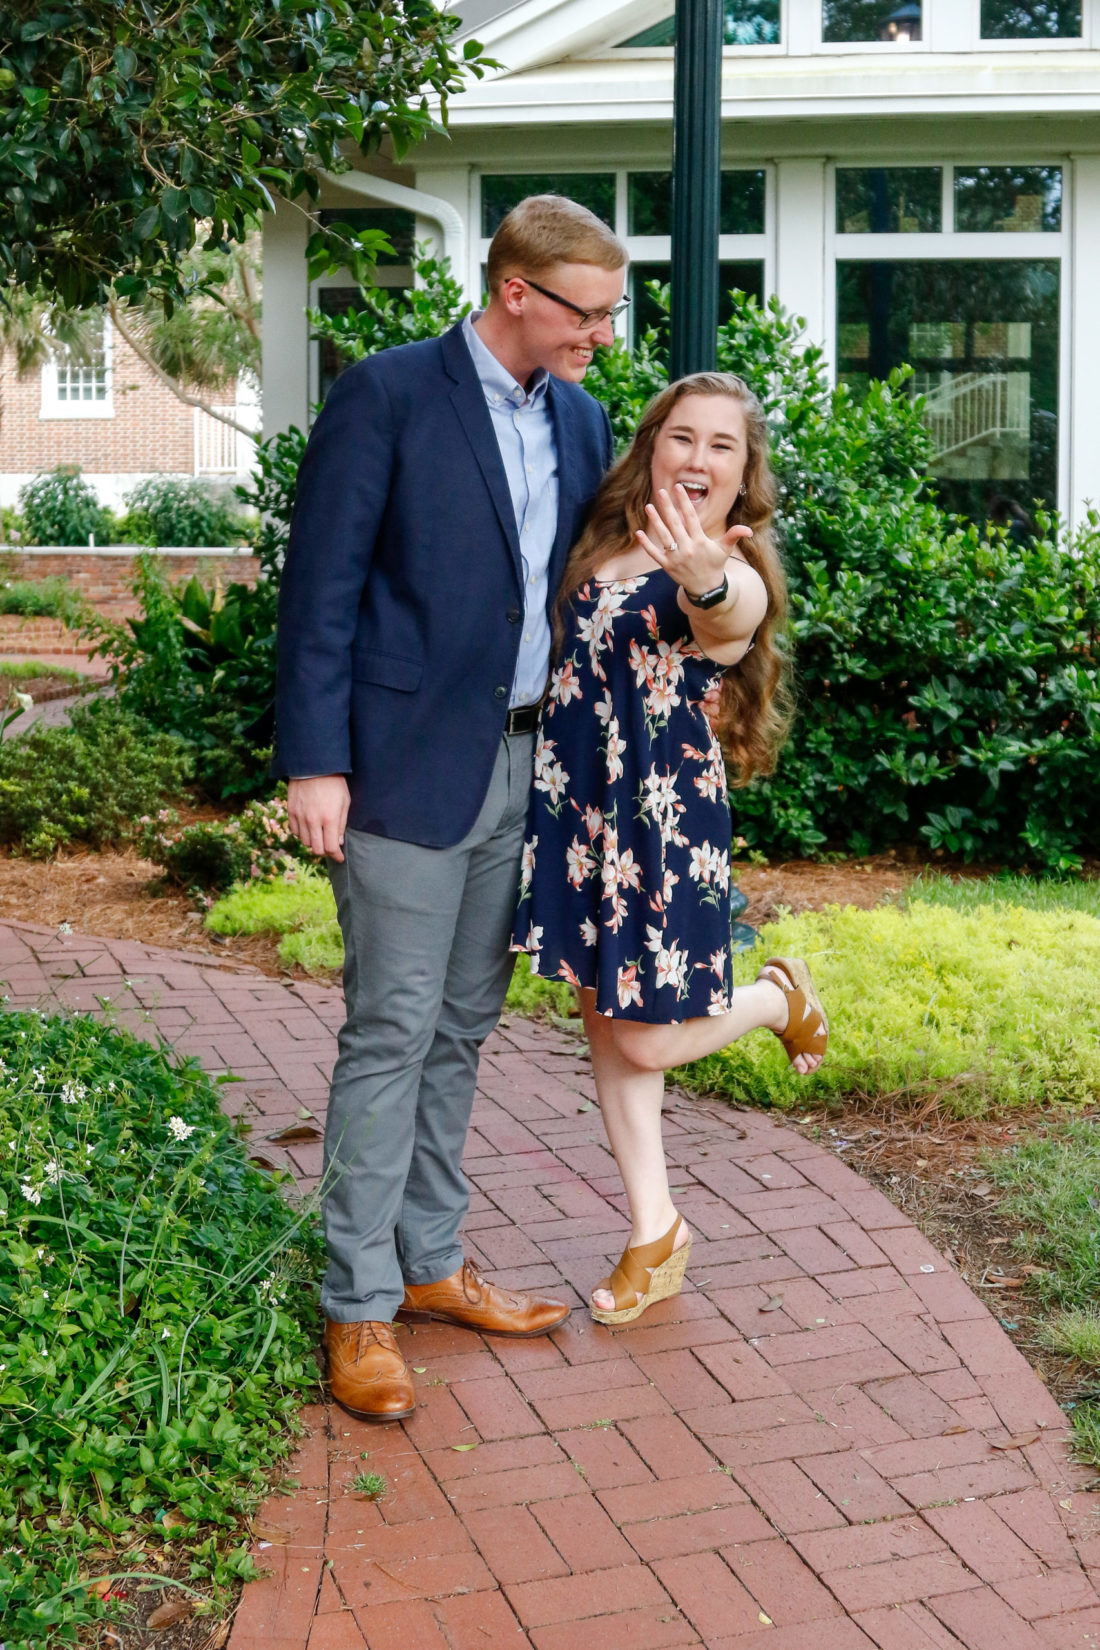 Collyn and Michaela excited to be married soon